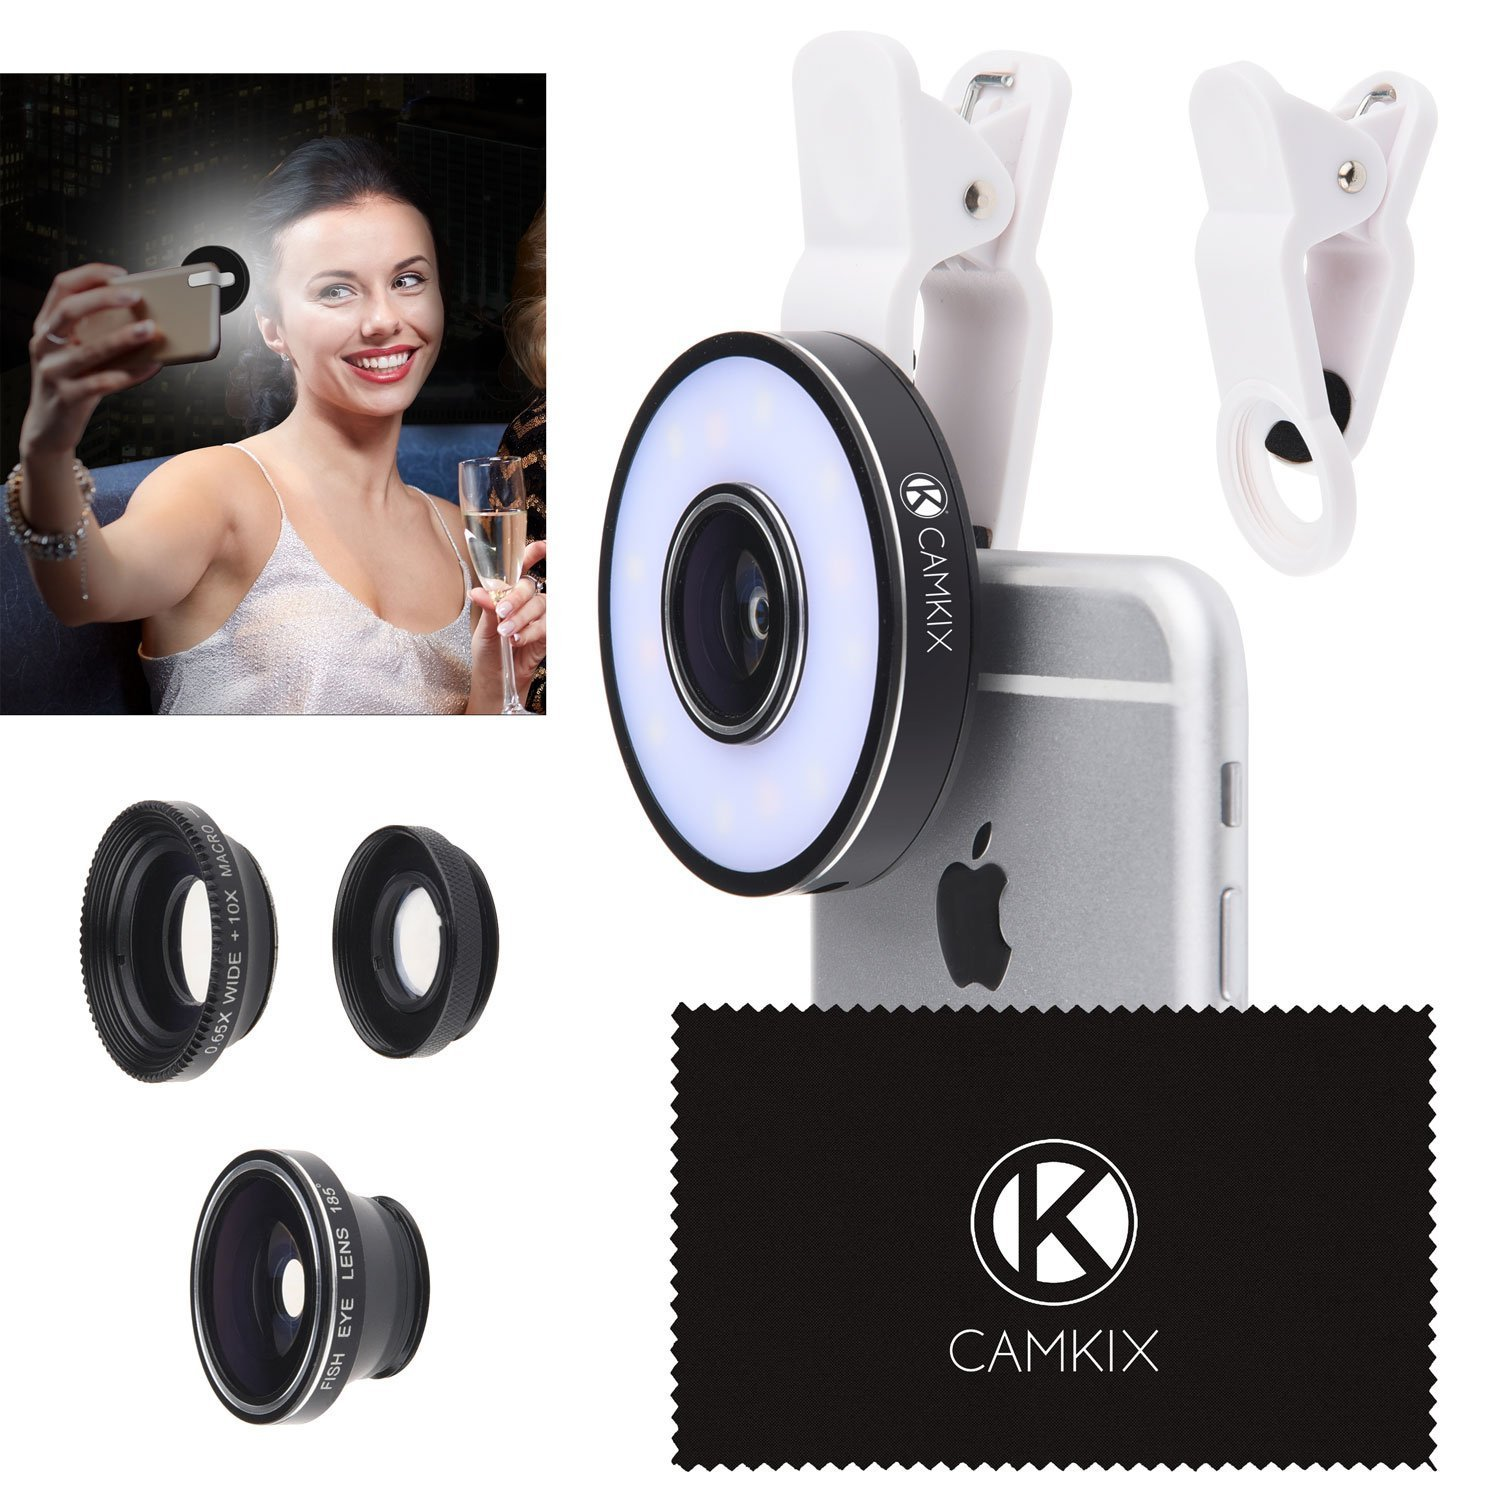 LED Ring Light and Camera Lens Kit - £12.49